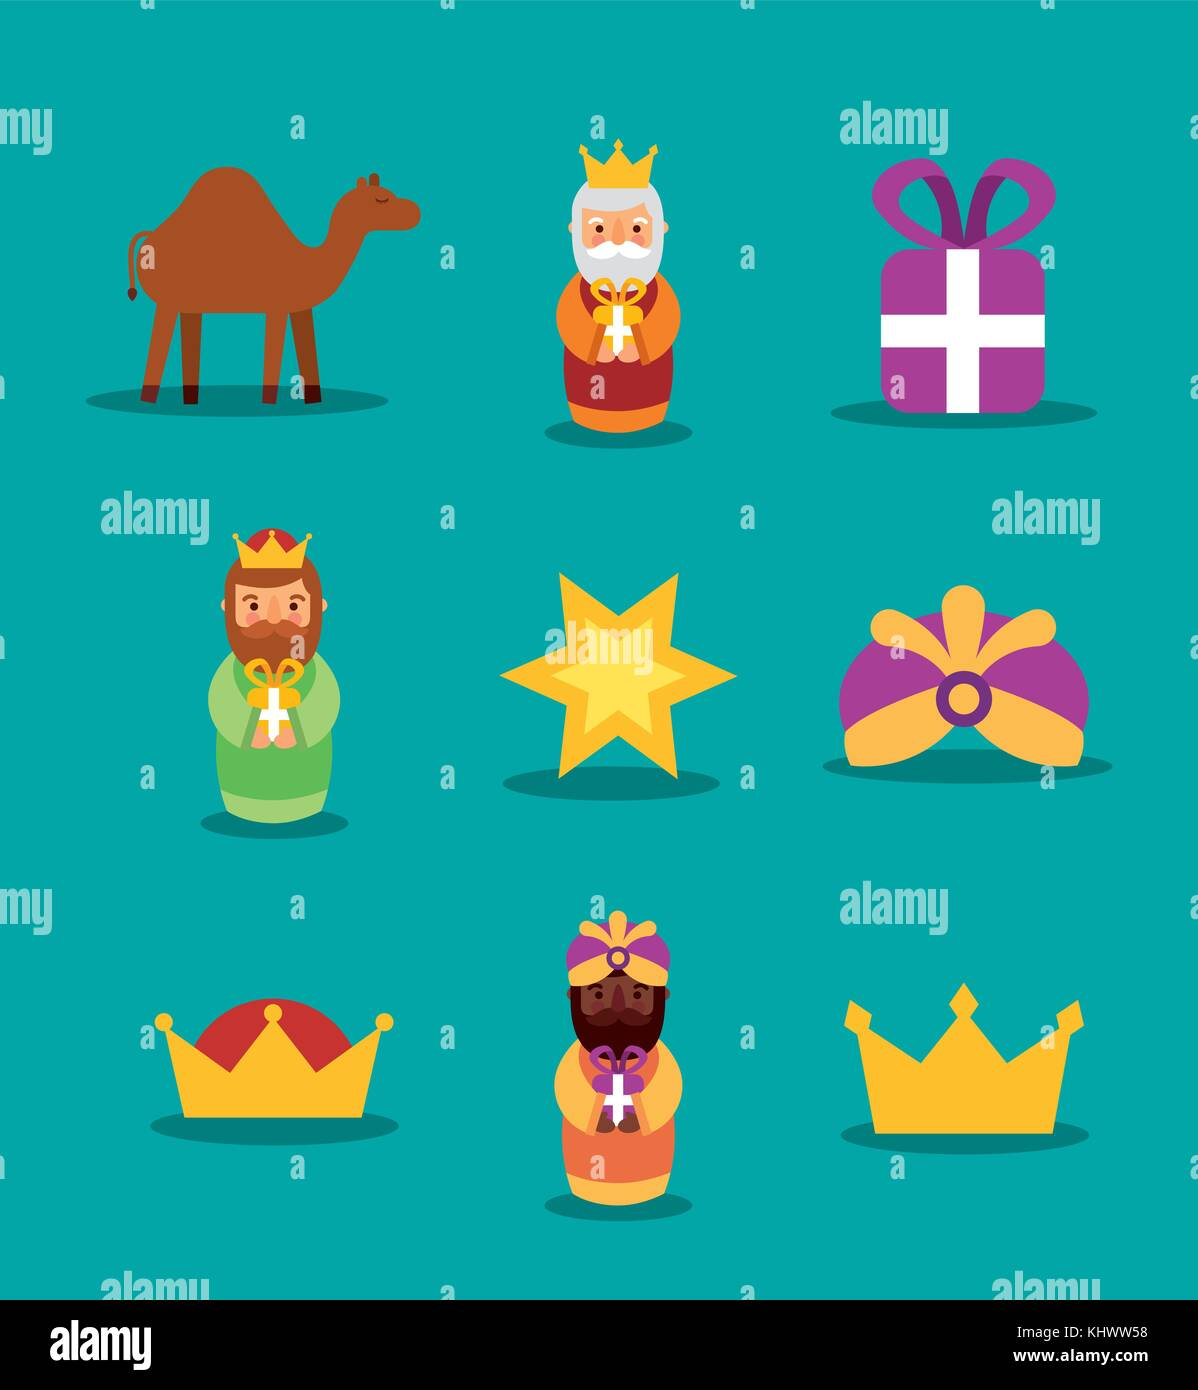 Free Camel Nativity Cliparts, Download Free Clip Art, Free Clip Art on  Clipart Library